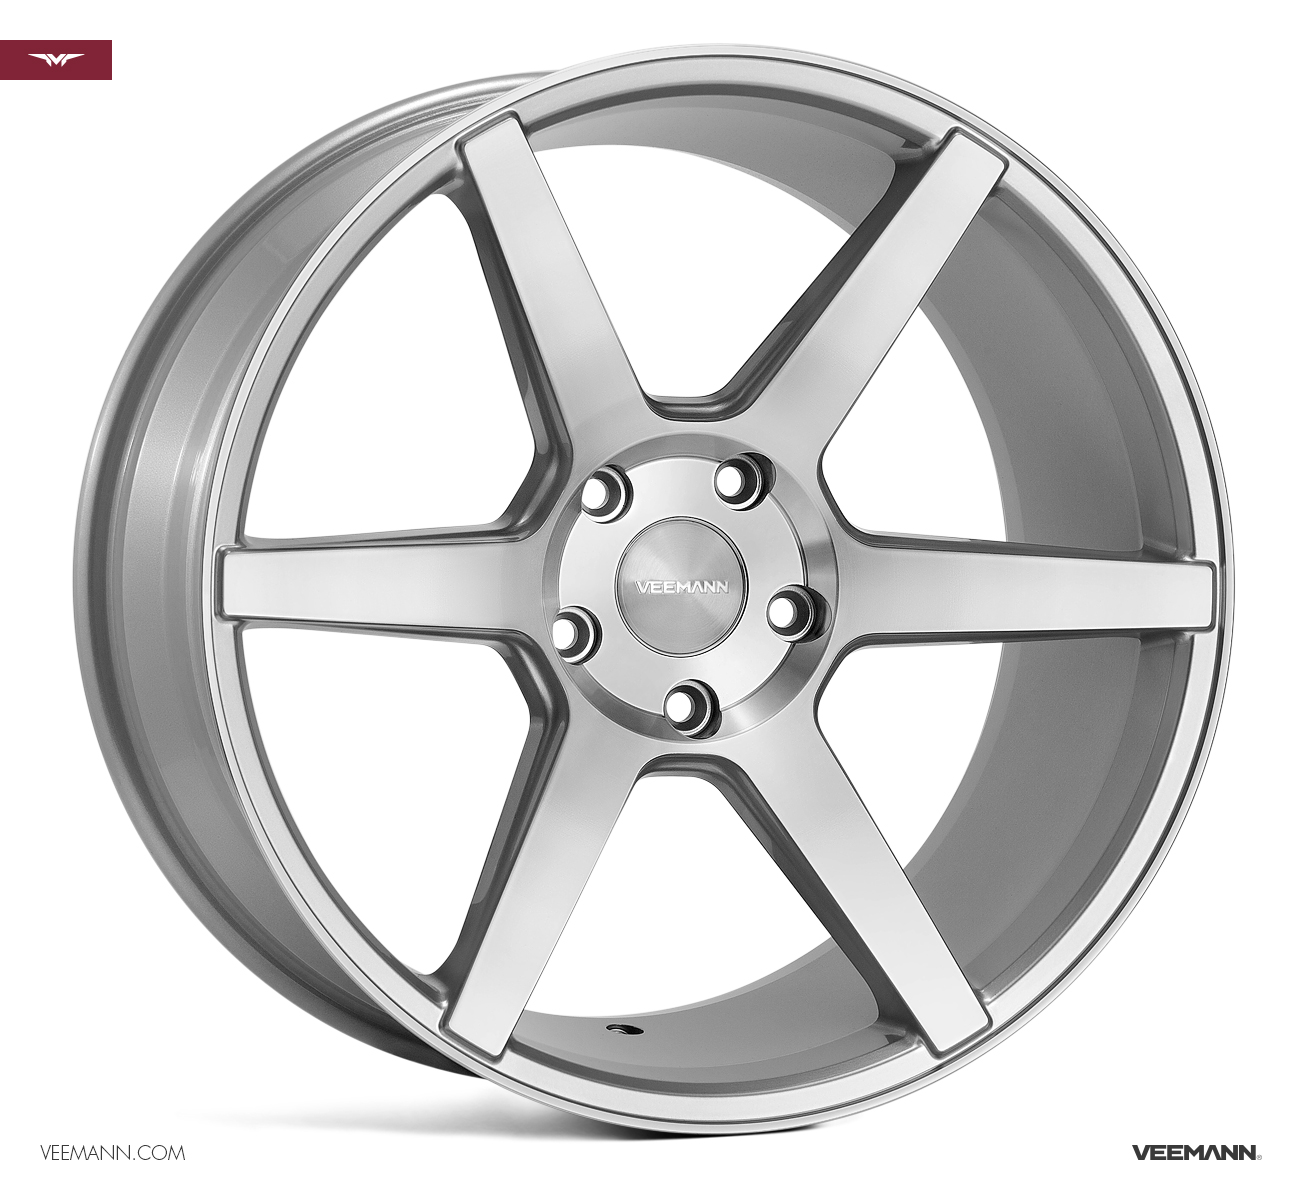 "NEW 19"" VEEMANN V-FS3 6 SPOKE CONCAVE ALLOYS IN SILVER WITH POLISHED FACE 8.5"" ALL ROUND"